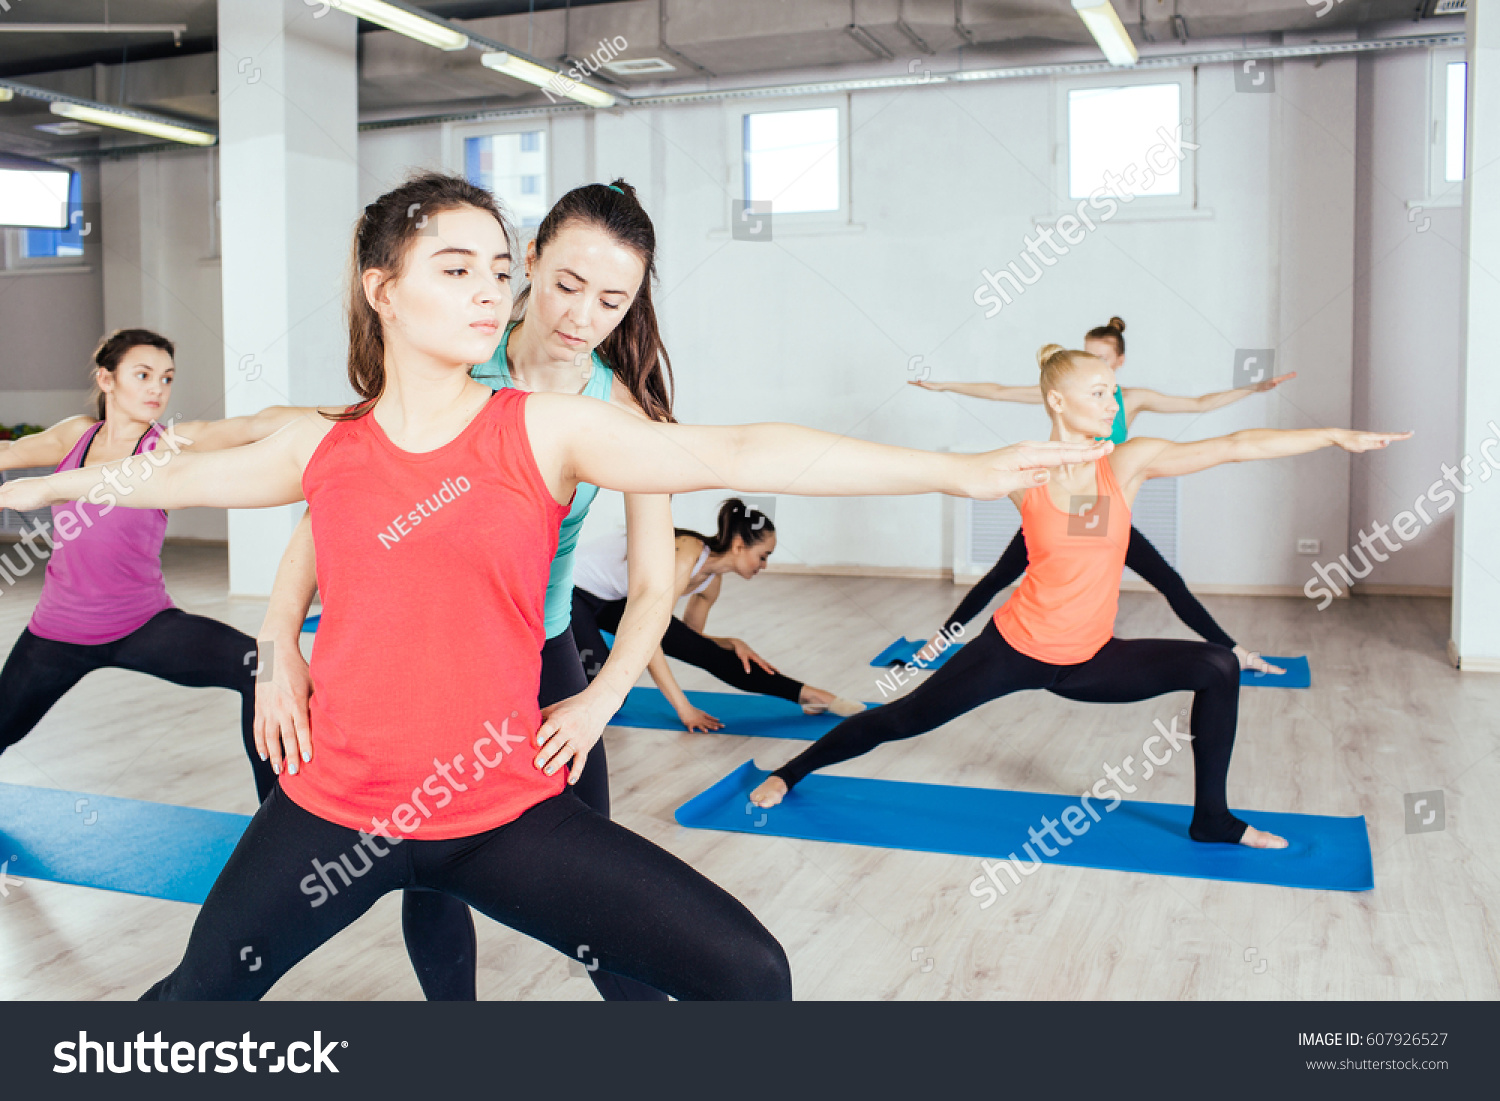 Teacher Helping Yoga Pose Indoorsfitness Sport Stock Photo